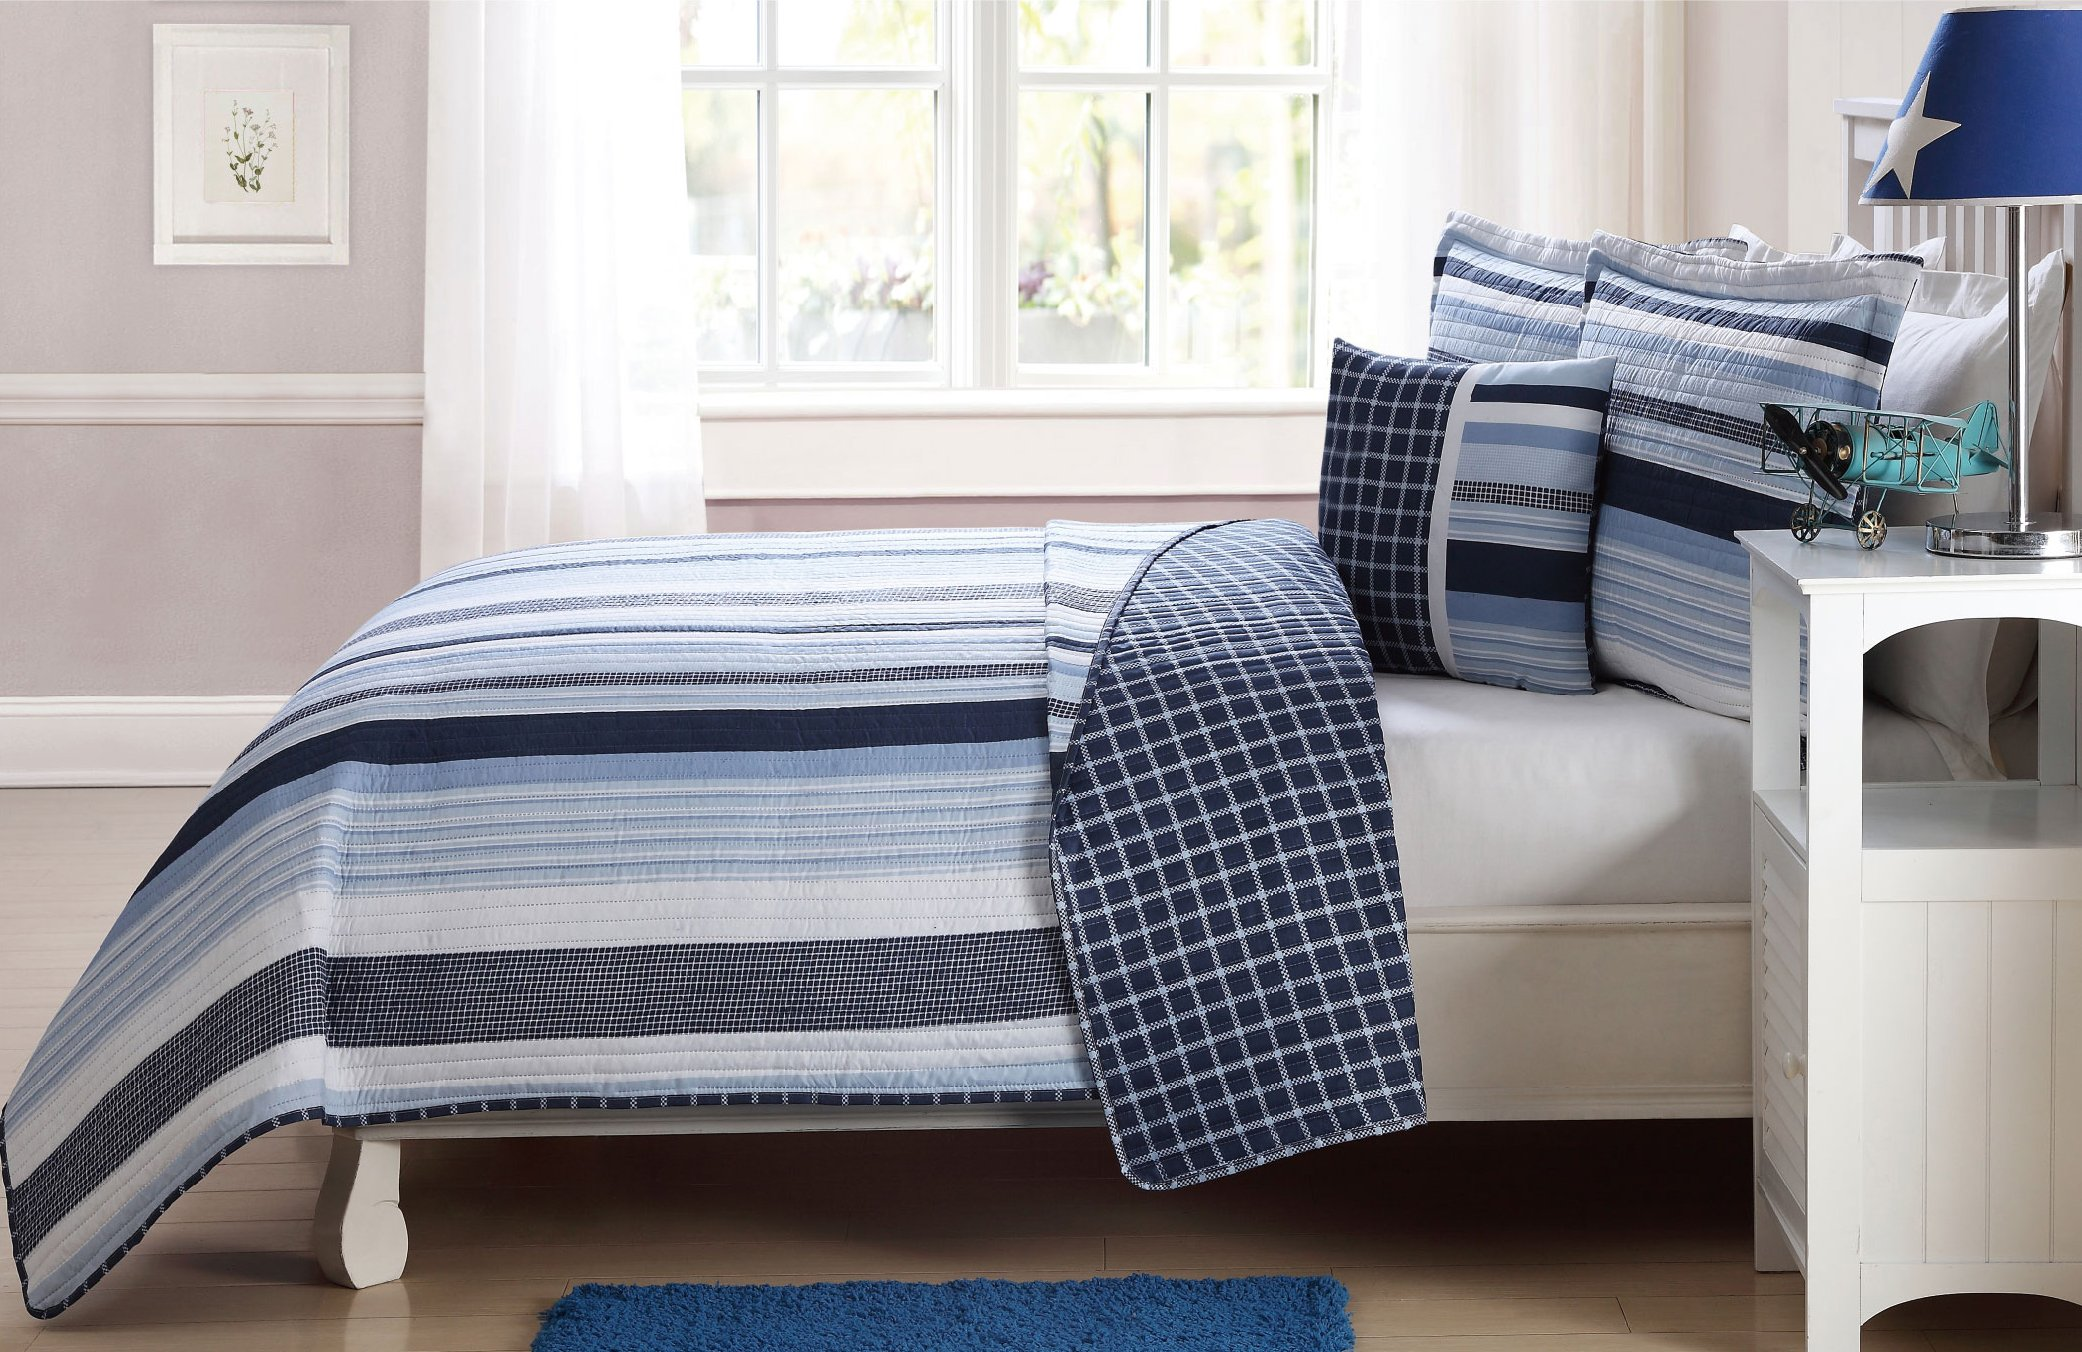 Elegant Home Multicolor Navy Light Blue White Elegant Striped Stripes Design Printed Reversible Colorful 3 Piece Quilt Bedspread Bedding Set with Decorative Pillow for Kids / Boys (Twin)